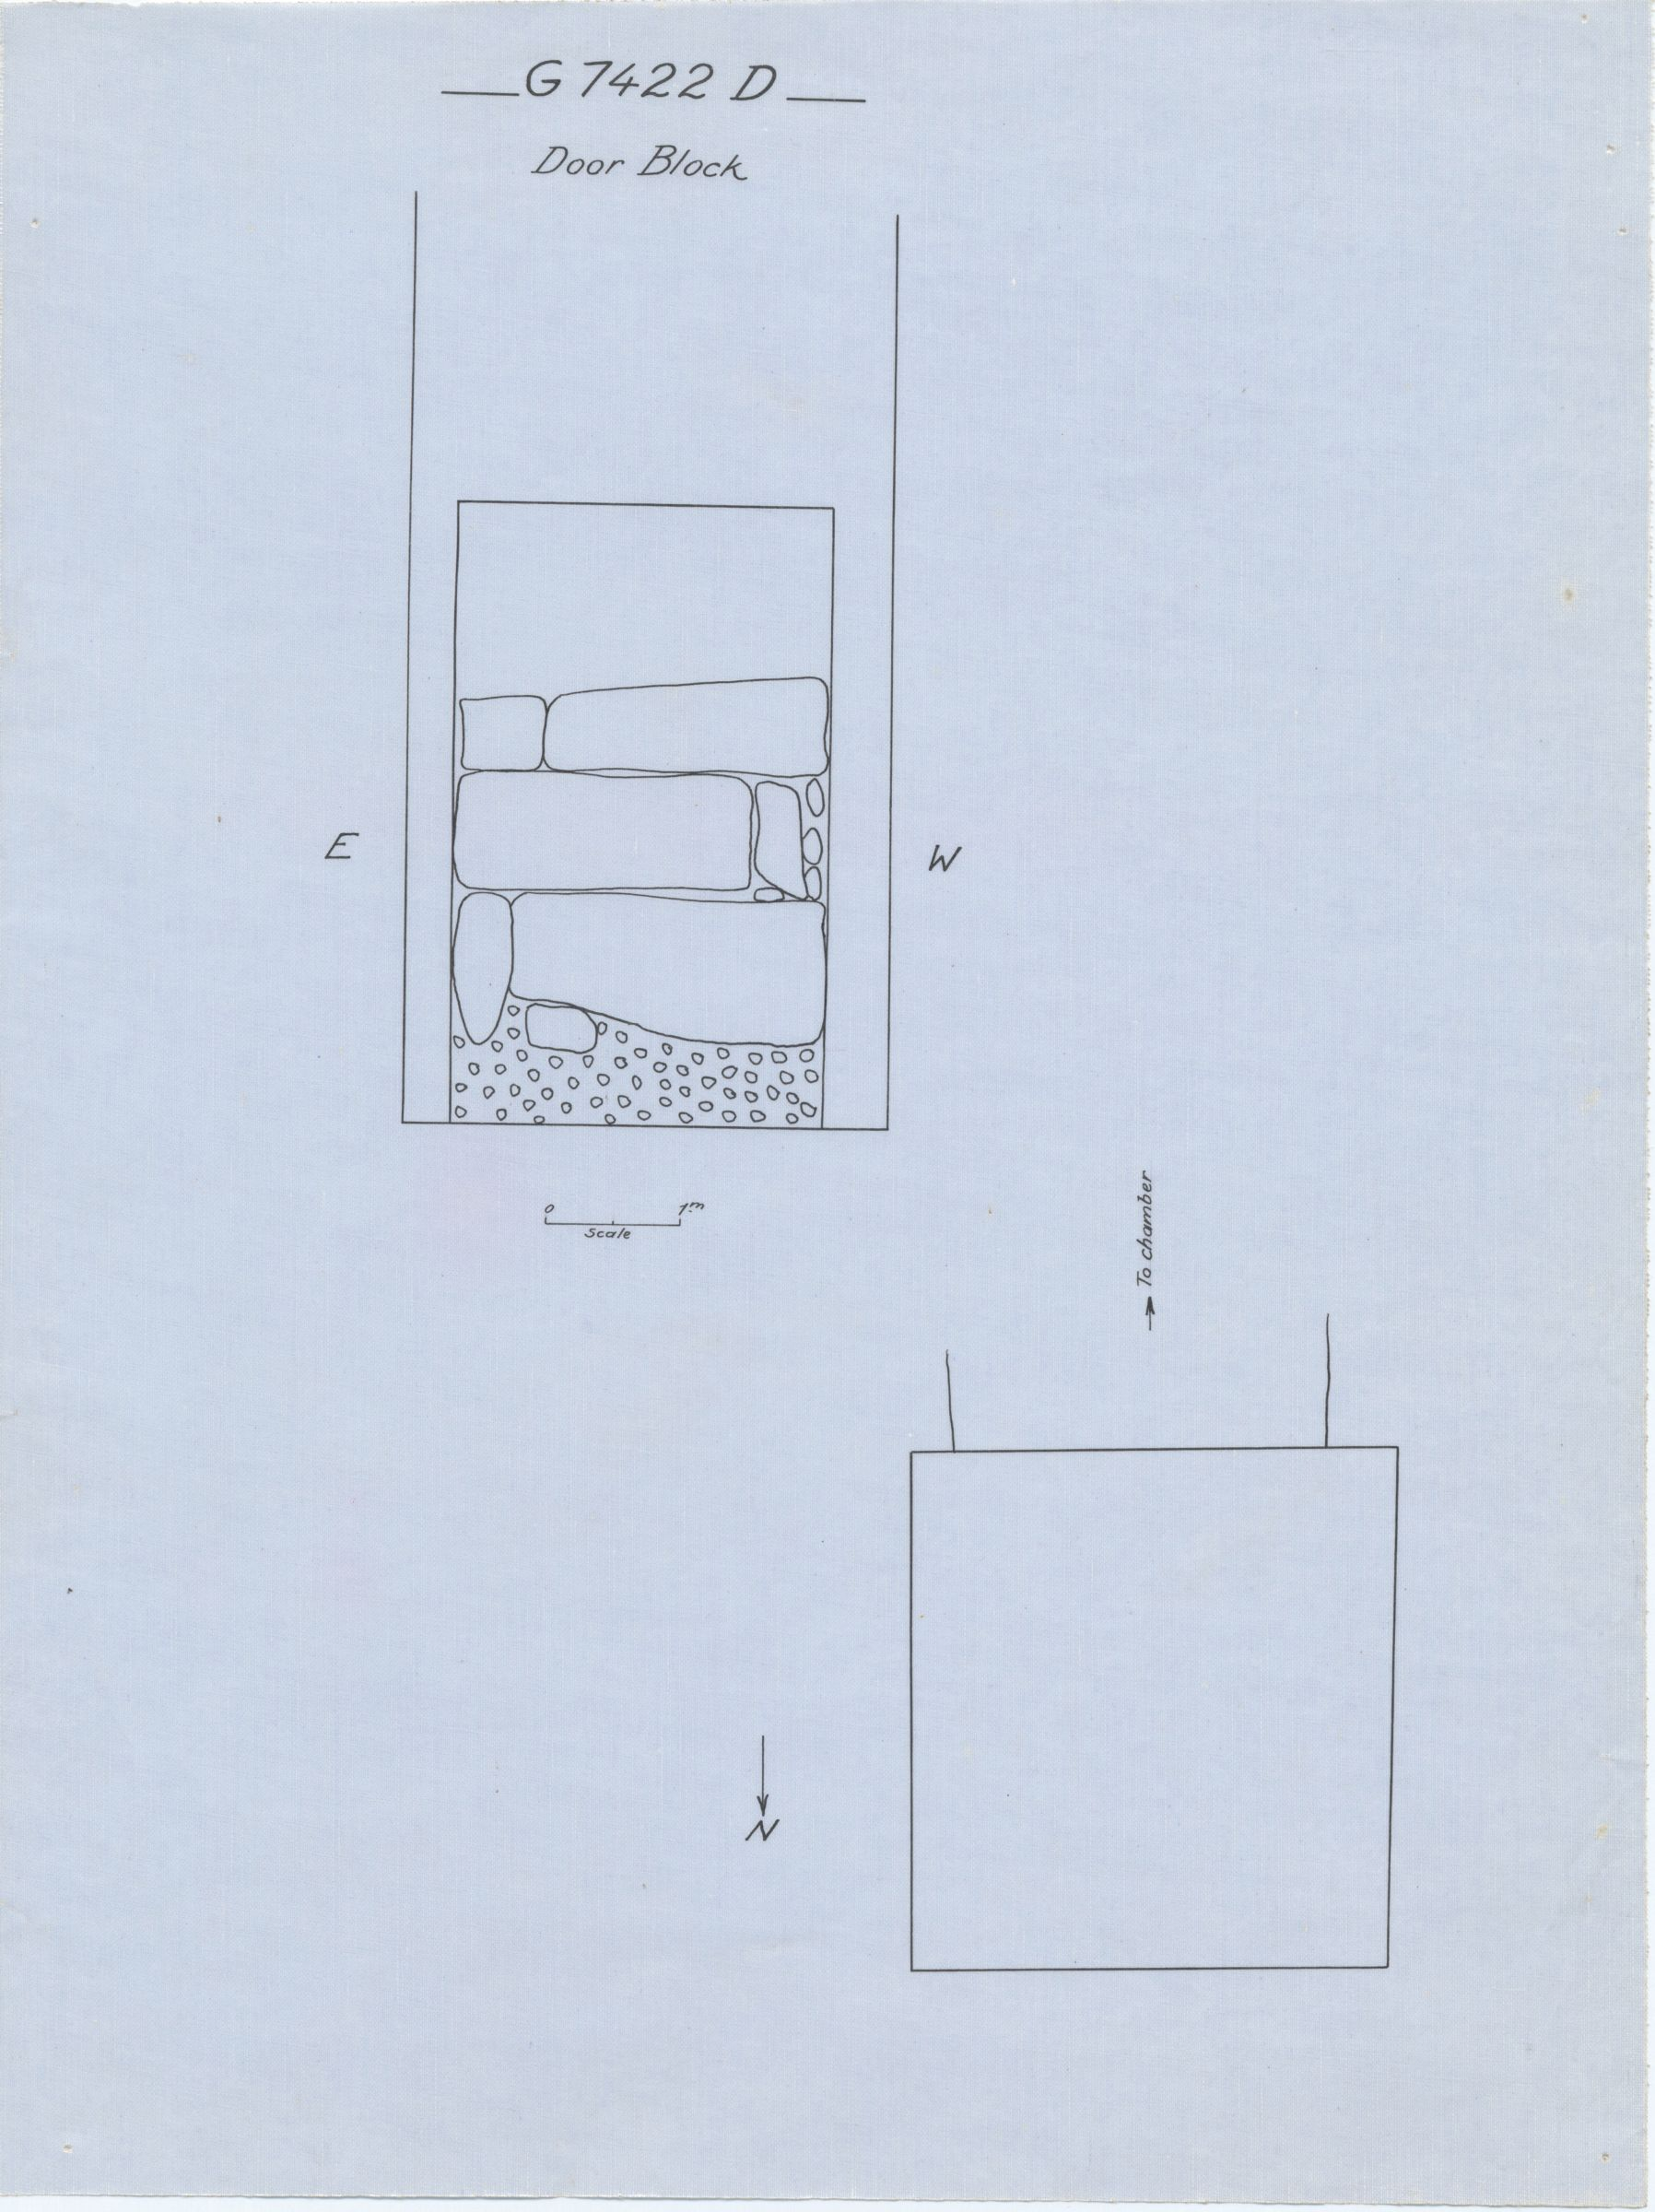 Maps and plans: G 7422, Shaft D